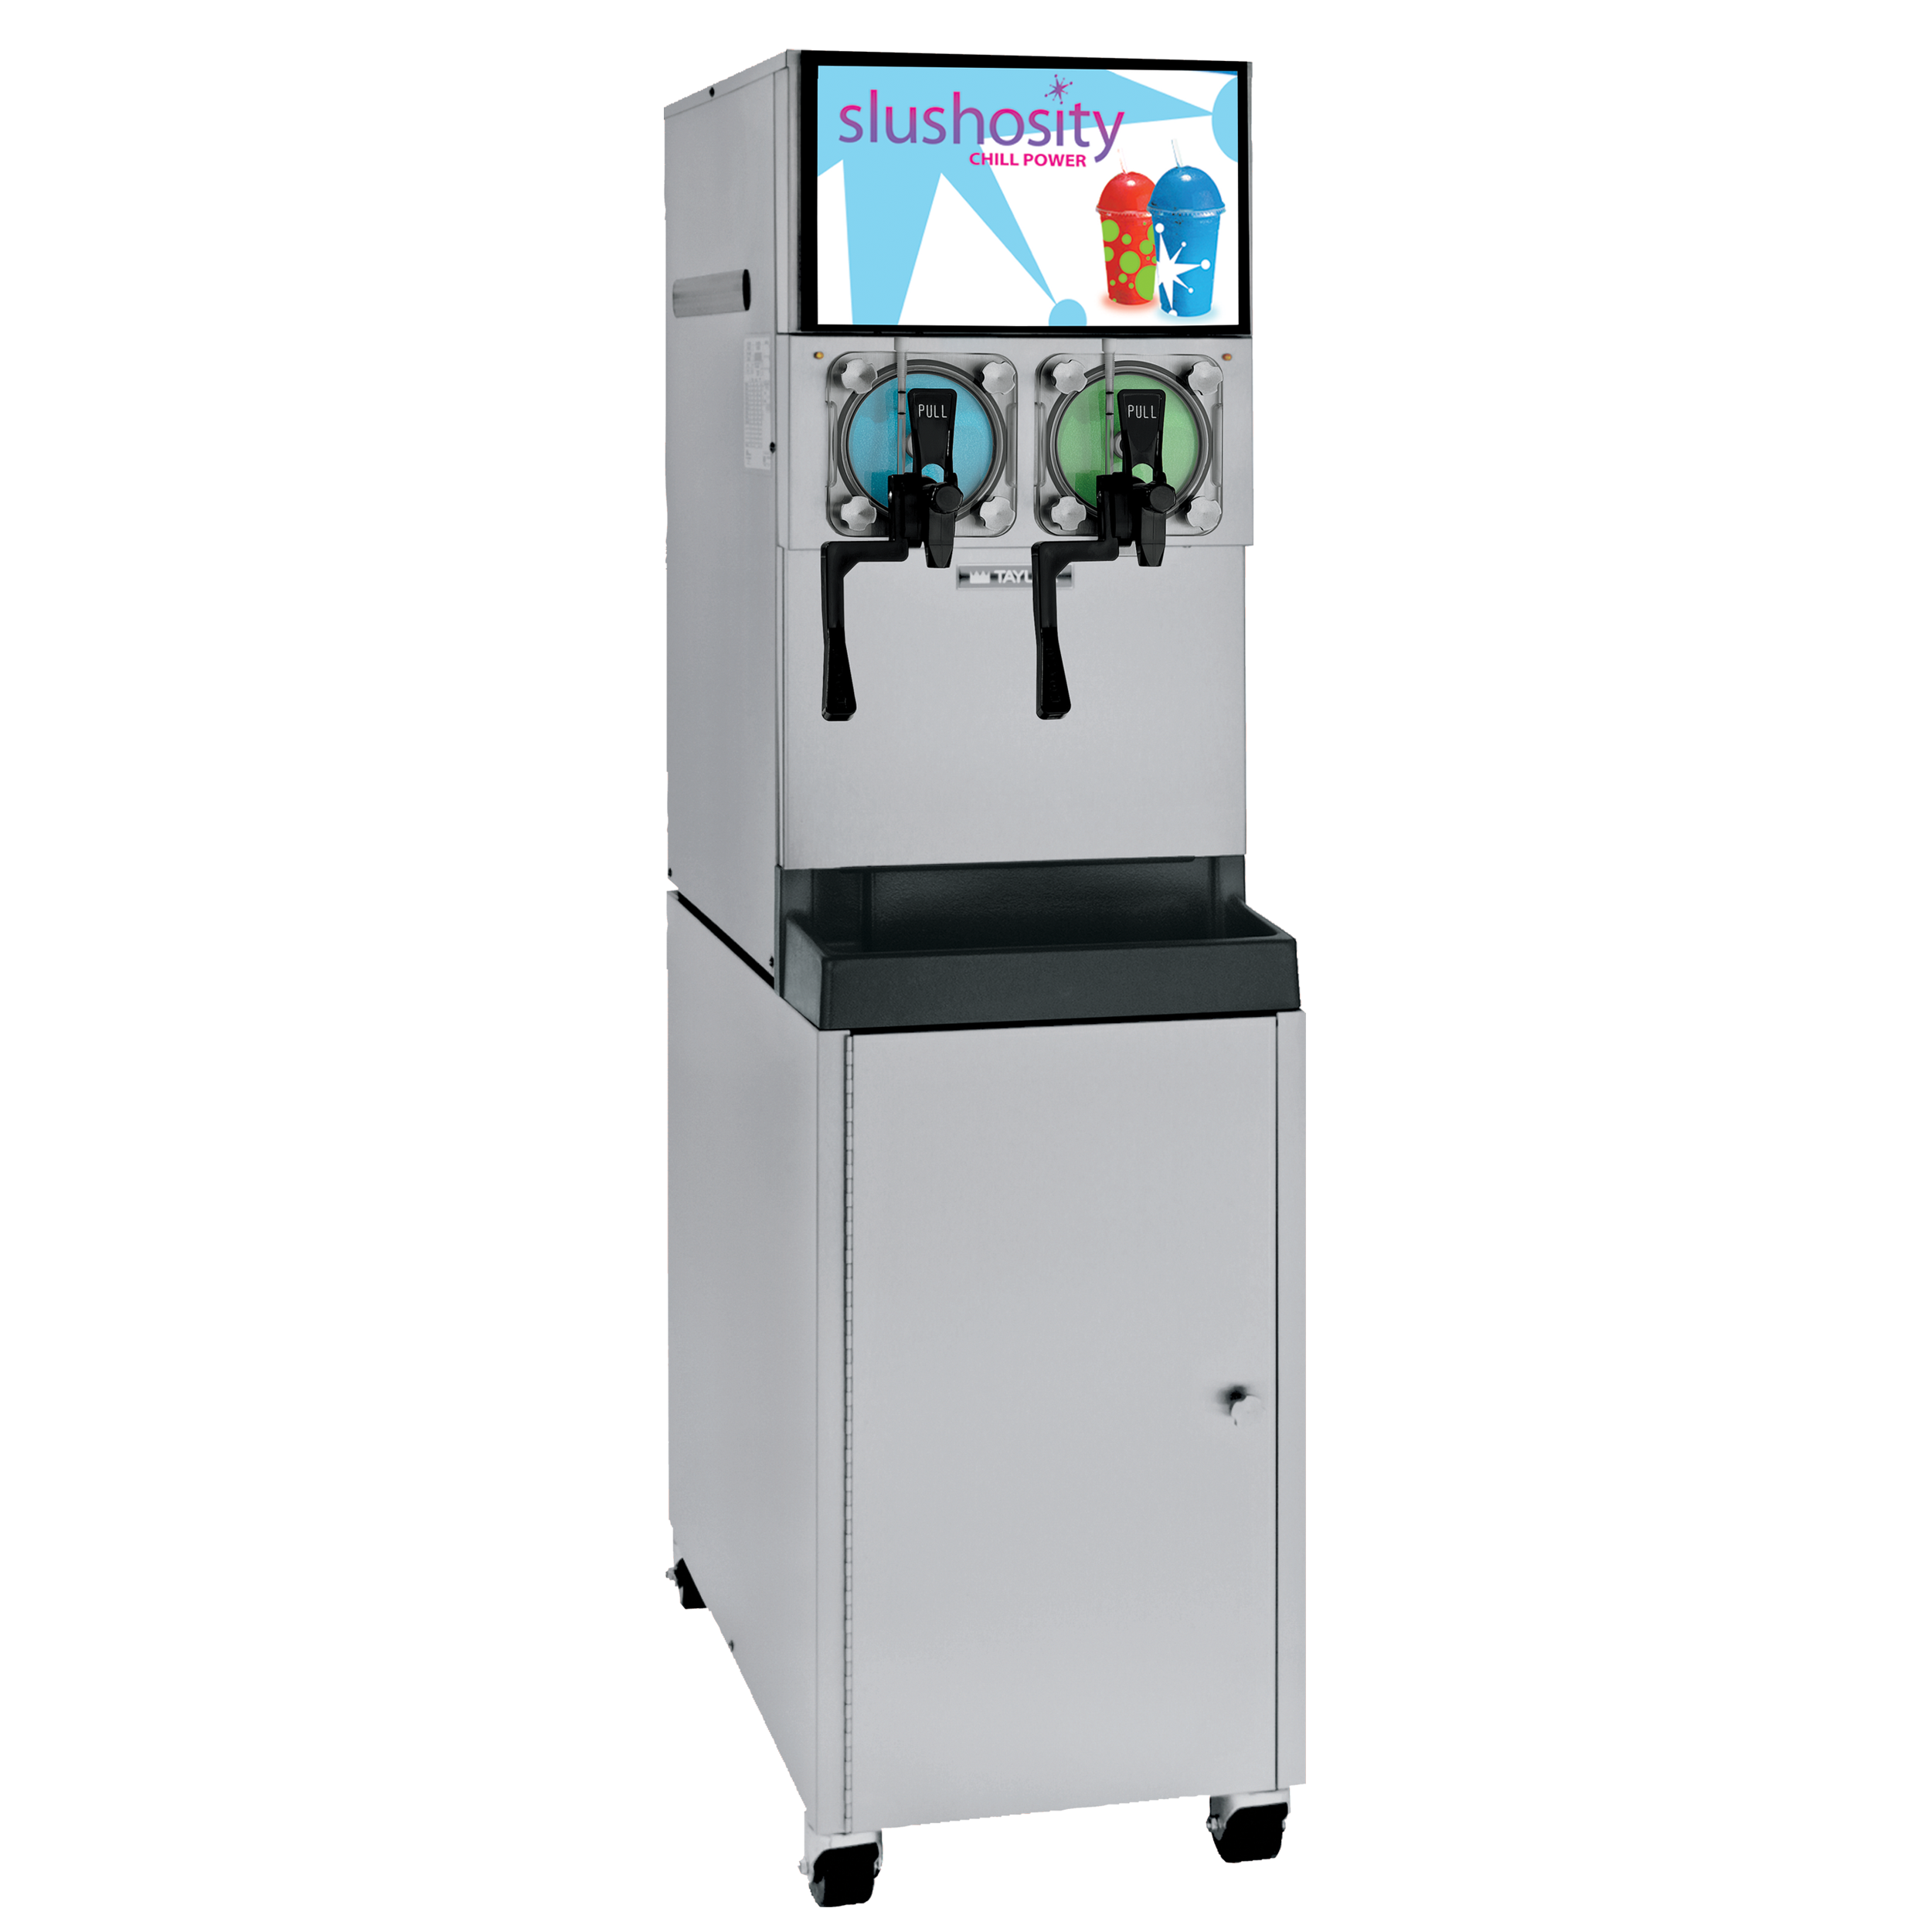 Model C300   Frozen Carbonated Beverage (FCB) Freezer  Dispense a light, fluffy, high overrun slush product in a pressurized system from this modular, counter-top freezer. Optional nonpressurized system produces a wetter, lower overrun slush. Air is discharged out the top of the unit to accommodate tight counter space. Optional cart converts the unit to a self-contained floor model, and provides storage for the syrup.  KEY SPECIFICATIONS:   Finished Products : Frozen Carbonated Beverage   Installation : Countertop (Floor - with optional cart)   Number of Flavors : 2   Freezing Cylinder QTY : 2   Freezing Cylinder Size (qt/l) : 7/6.6